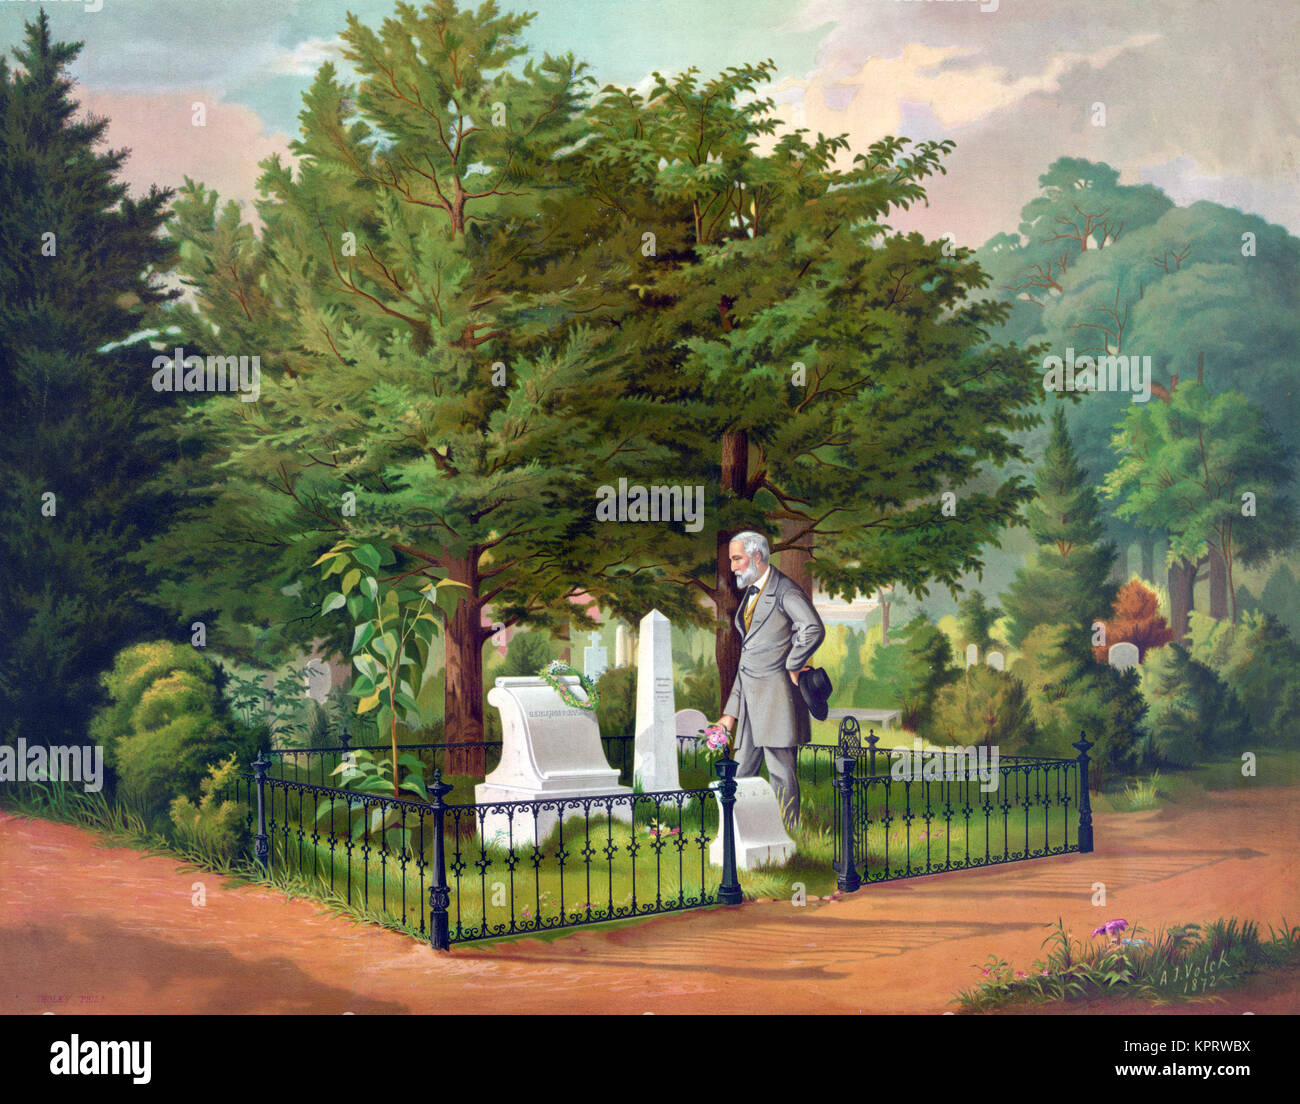 General Lee's last visit to Stonewall Jackson's grave - Stock Image